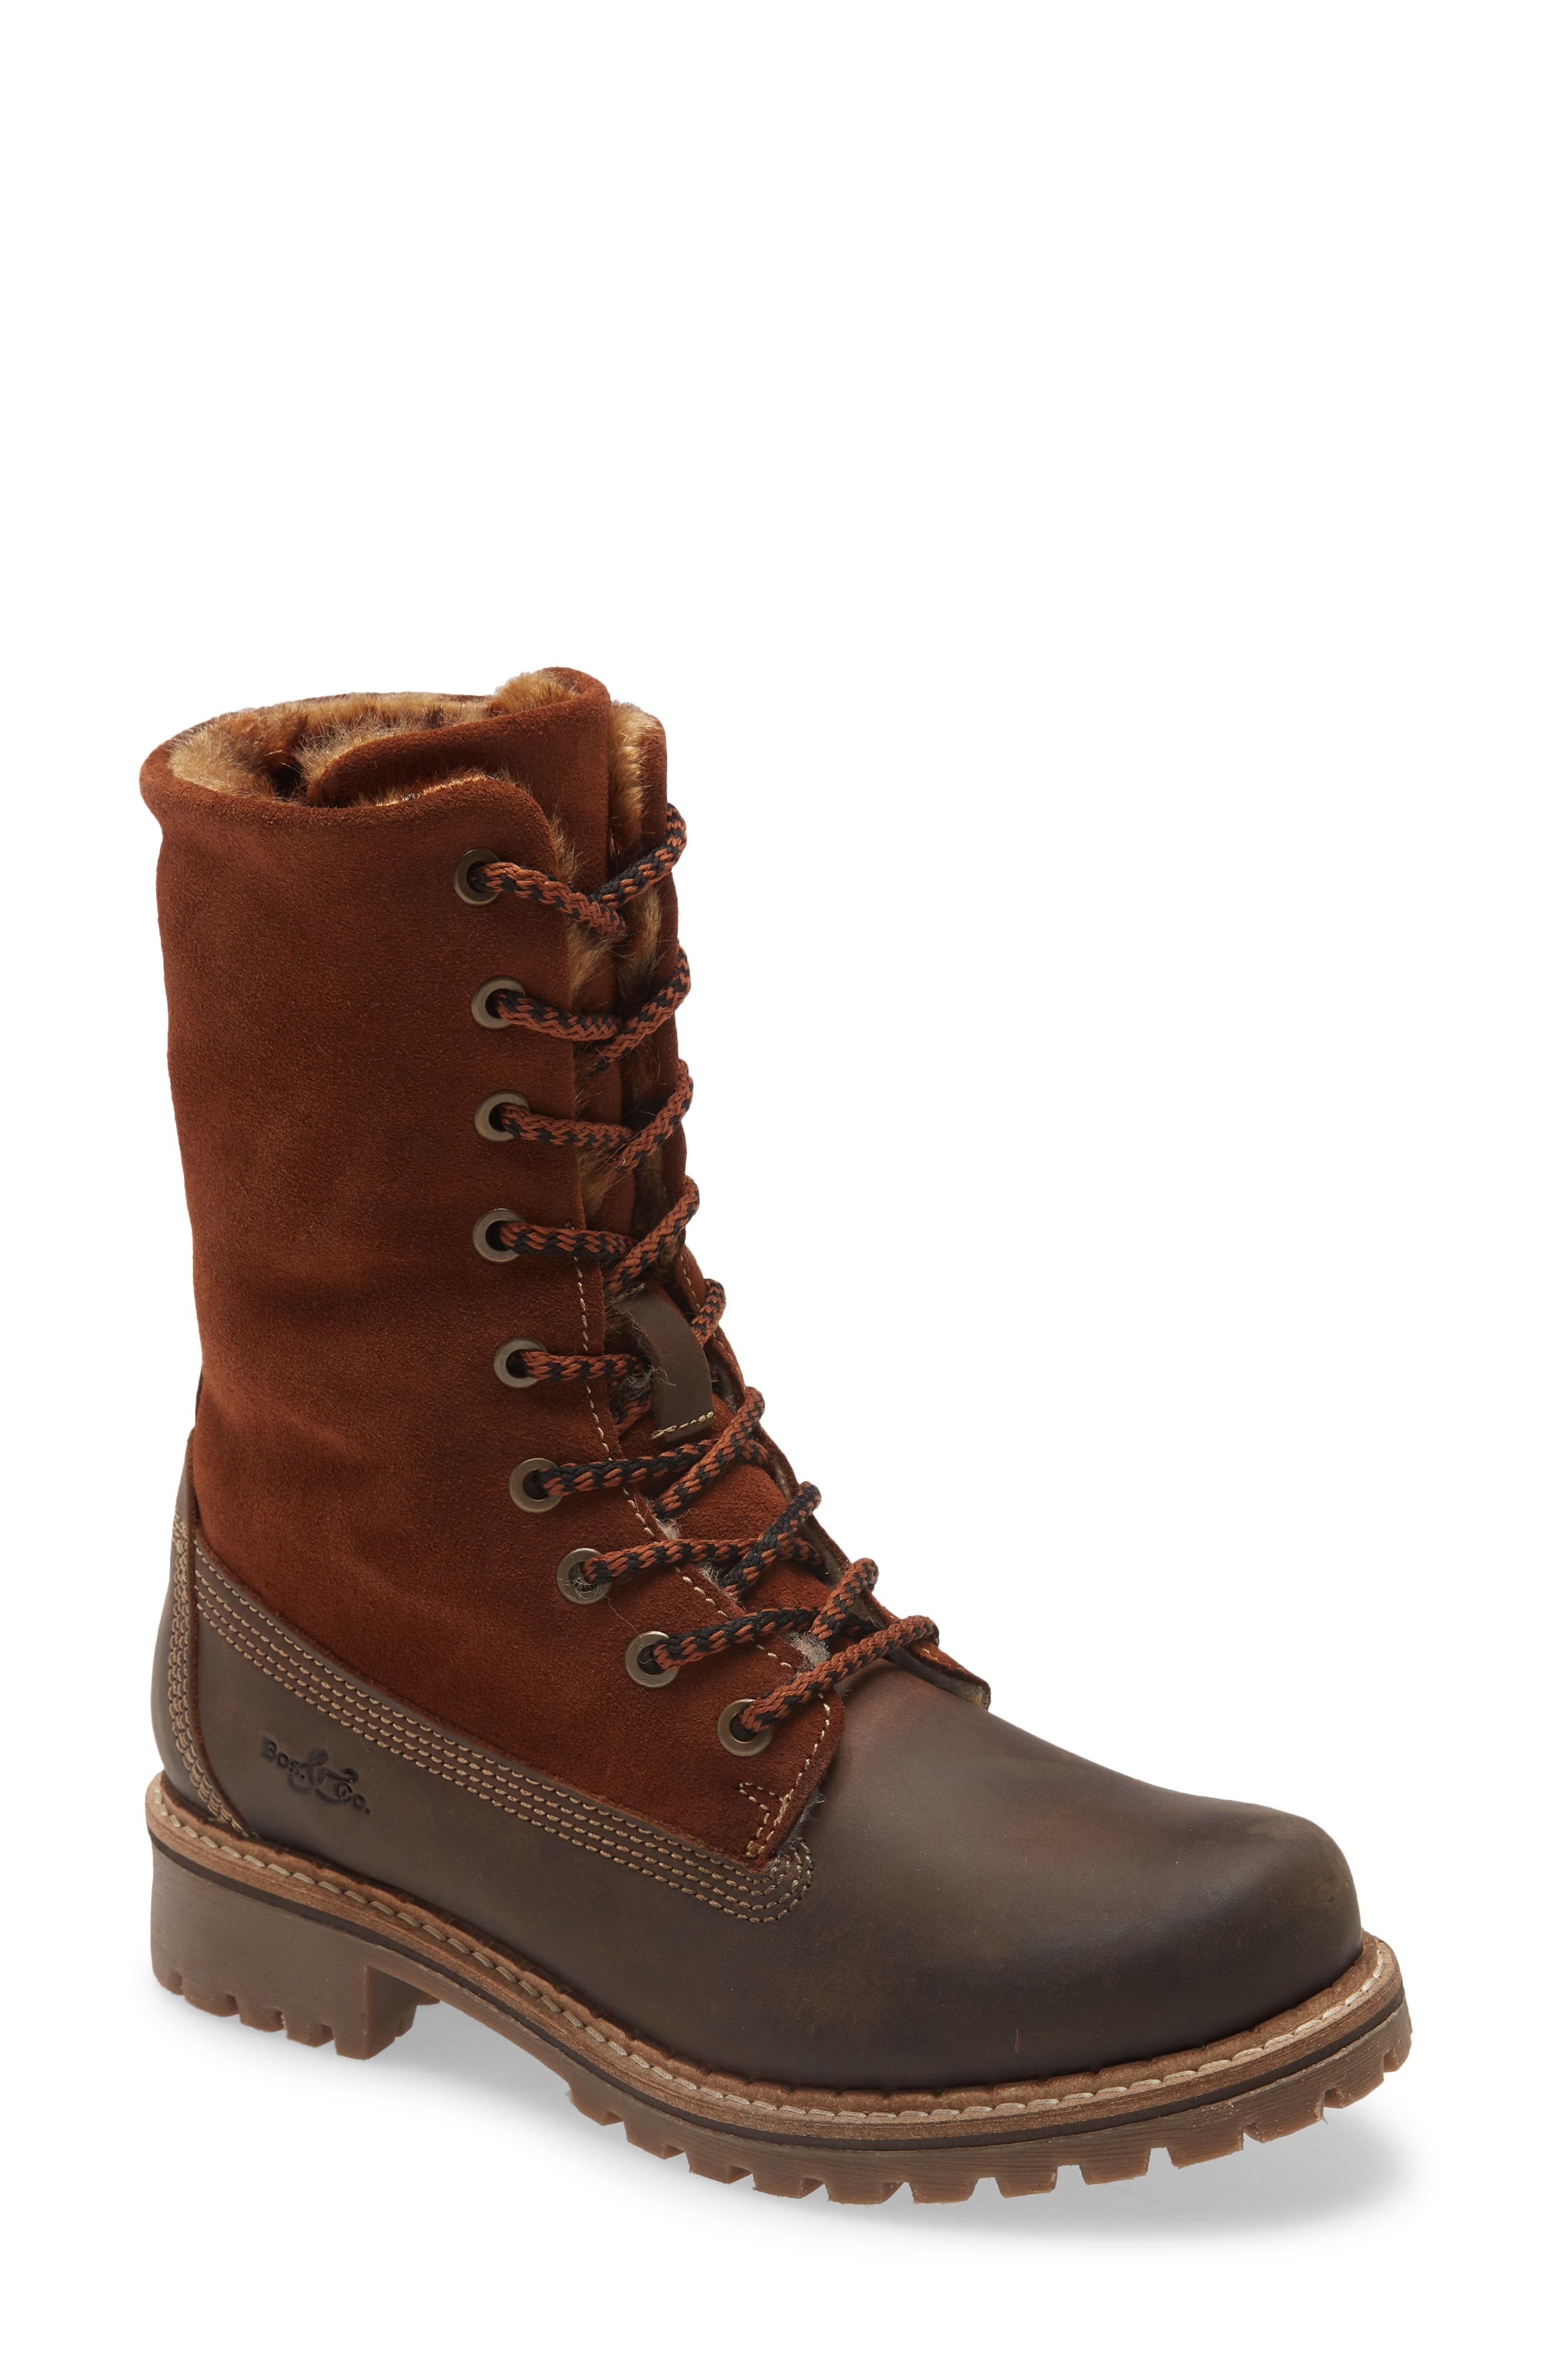 Stomp through the snow in style and comfort with this suede-and-leather boot lined in merino wool and featuring a fold-over shaft to show the faux-fur trim. The chunky lugged sole helps you keep a grip in treacherous urban terrain. Style Name: Bos. & Co. Hazel Wool Lined Waterproof Lace-Up Boot (Women). Style Number: 6086154. Available in stores.